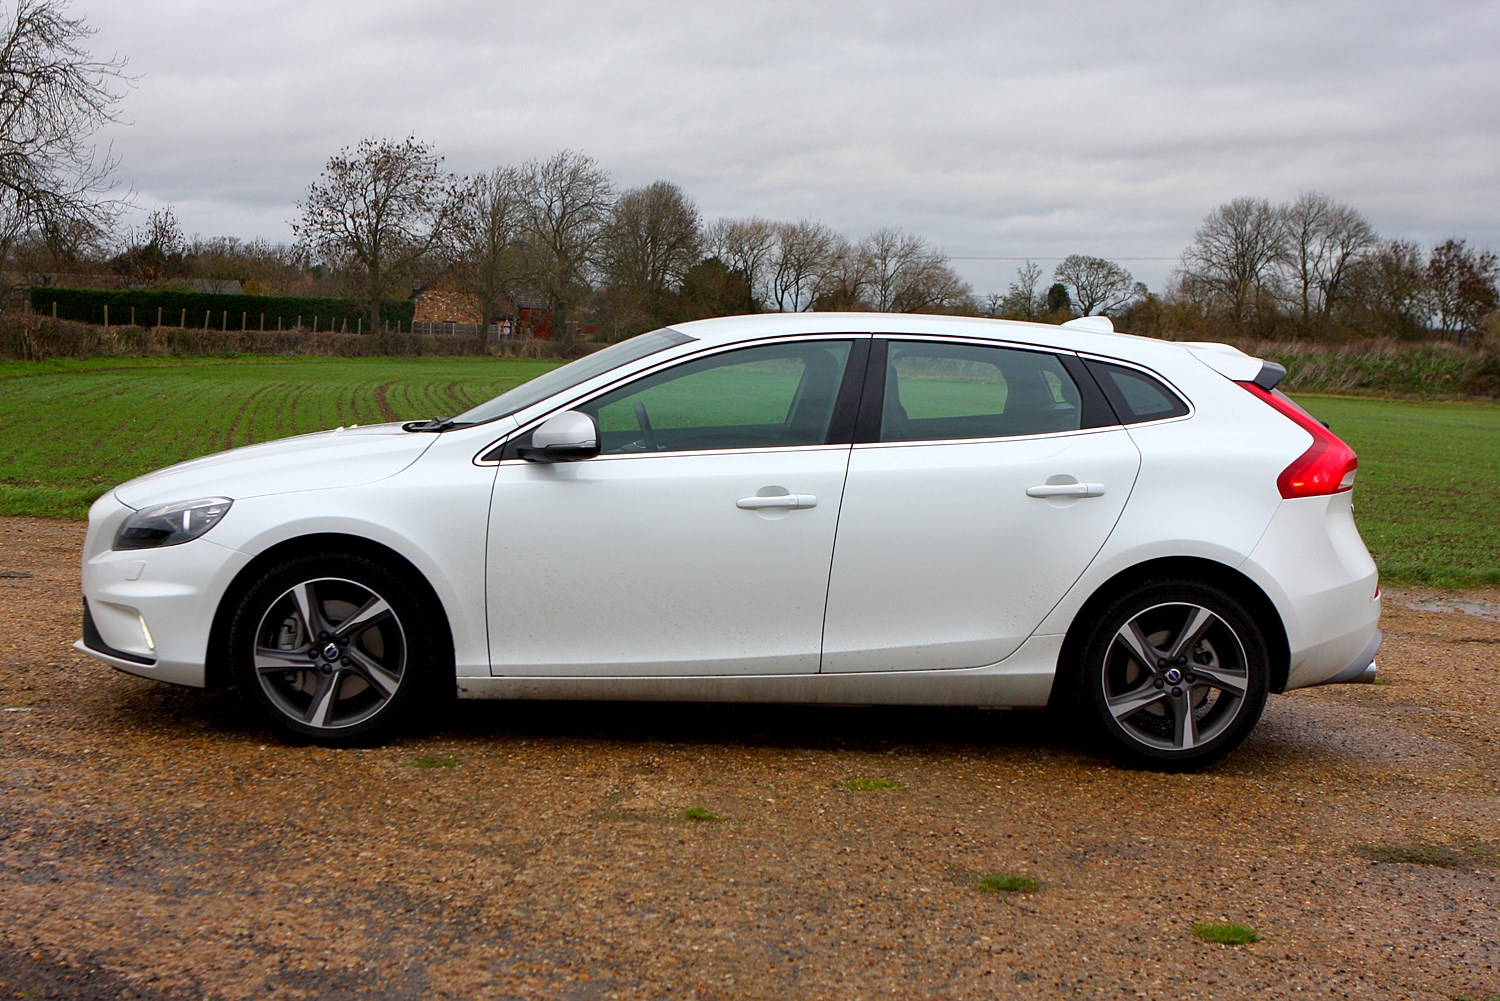 Used Cars For Sale In Ct >> Volvo V40 Hatchback (2012 - ) Features, Equipment and Accessories | Parkers